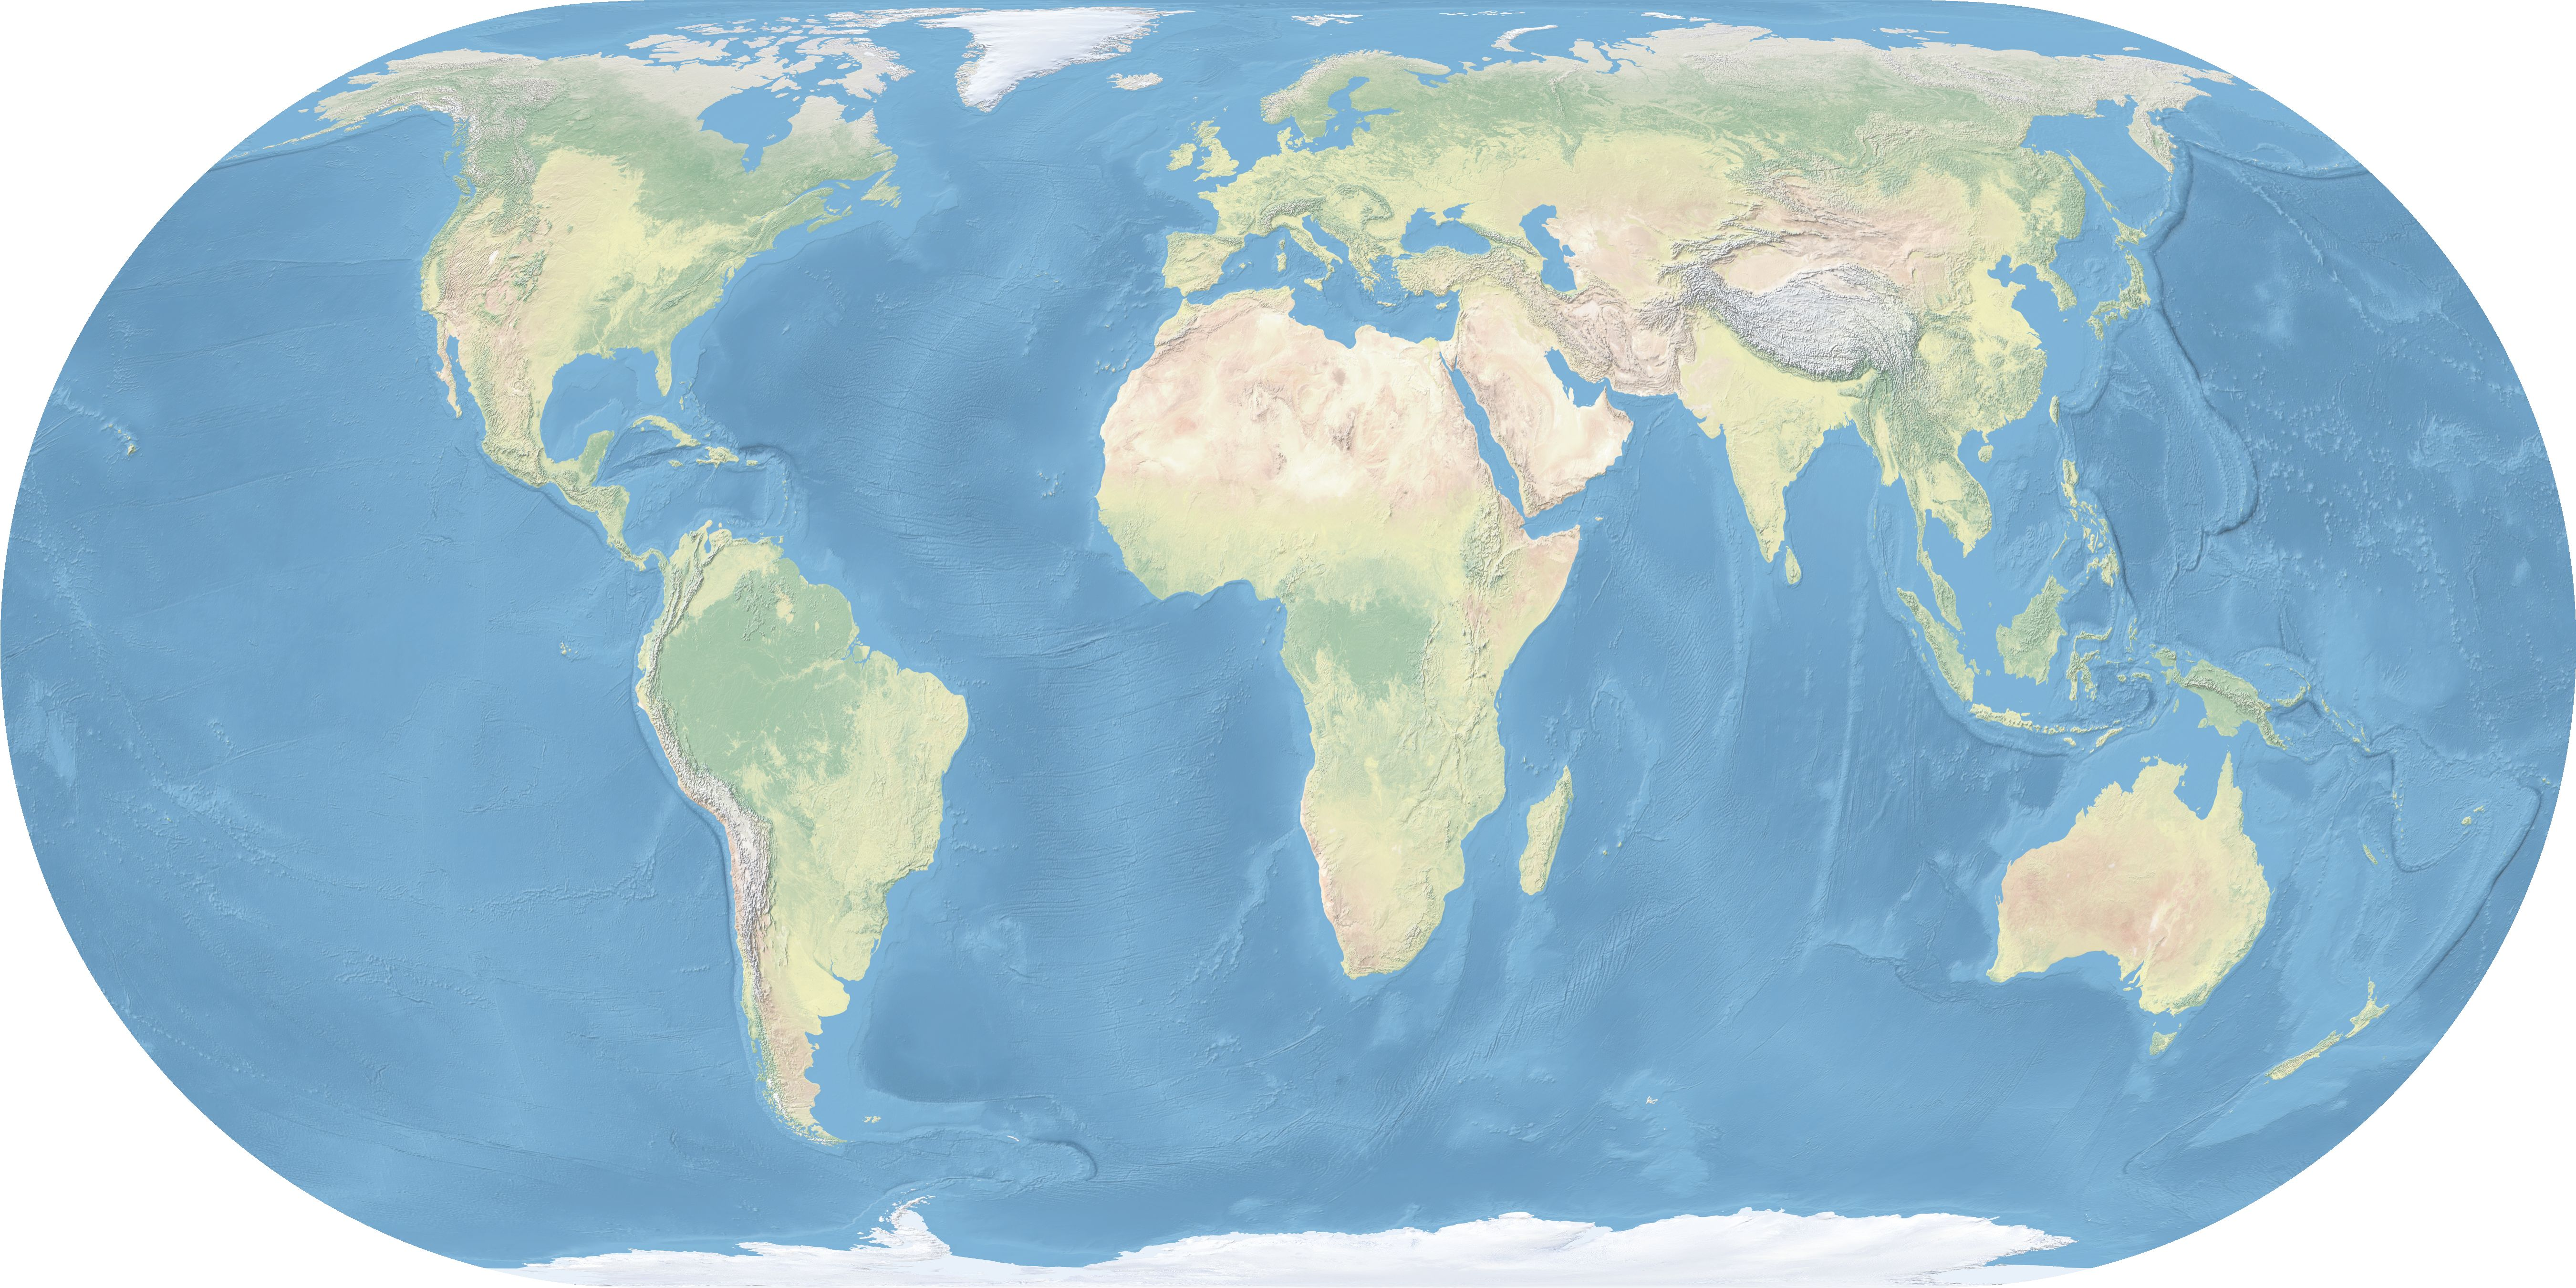 Maps Of The World Wikimedia Commons - Map of workd